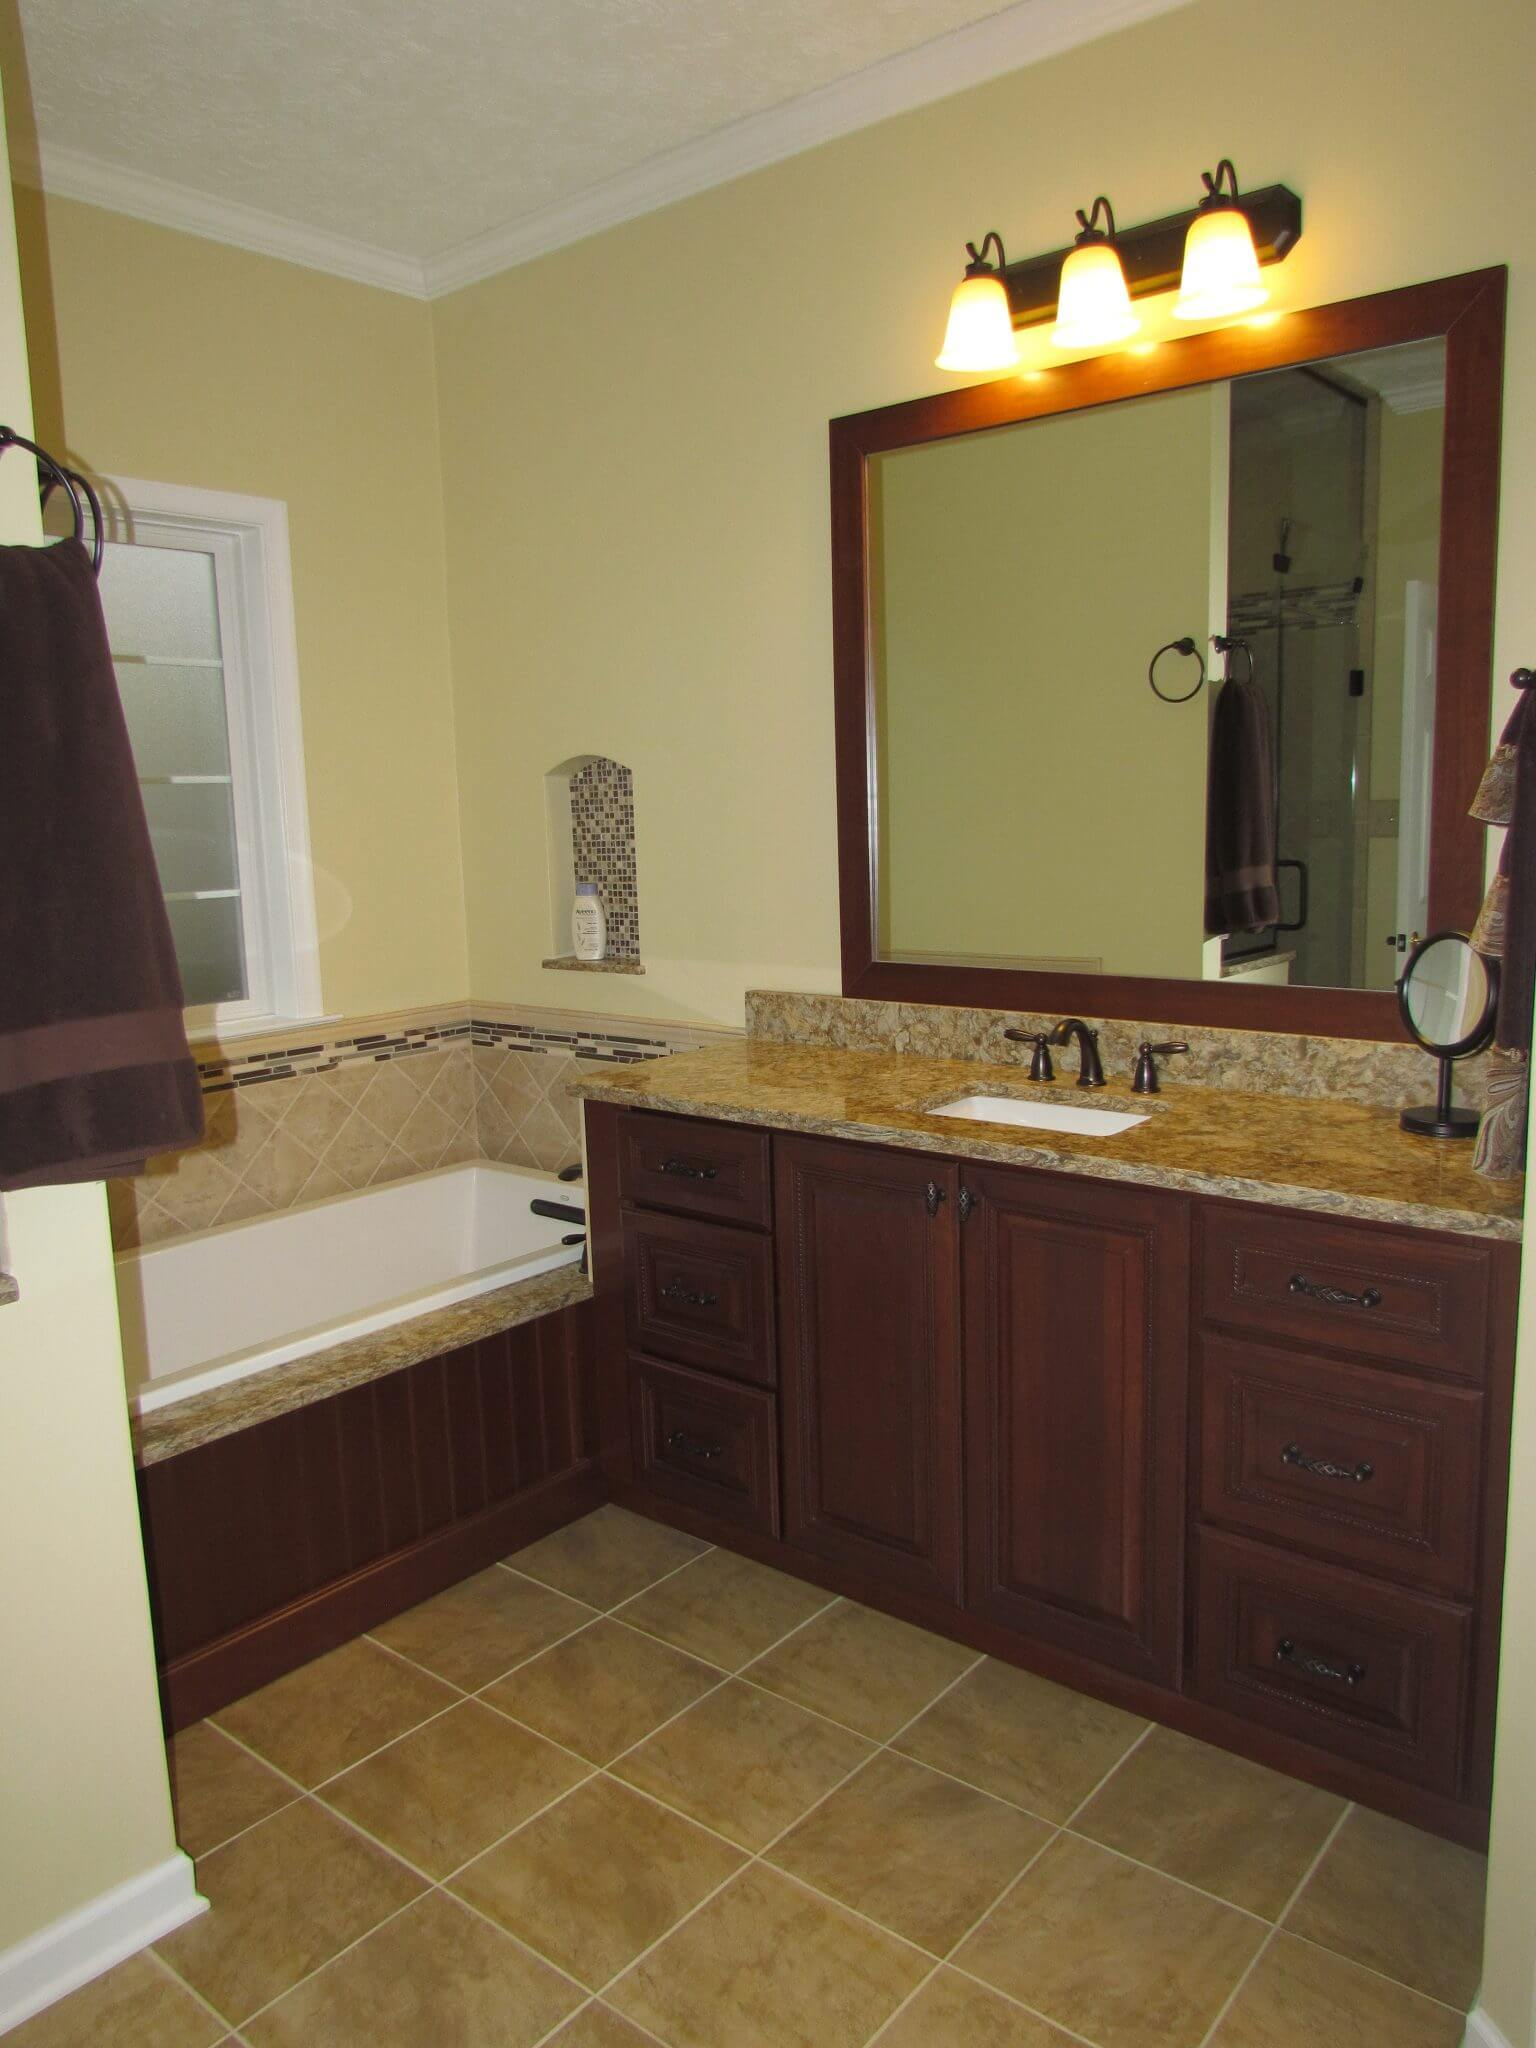 Master Bathroom En Suite bathtub and sink